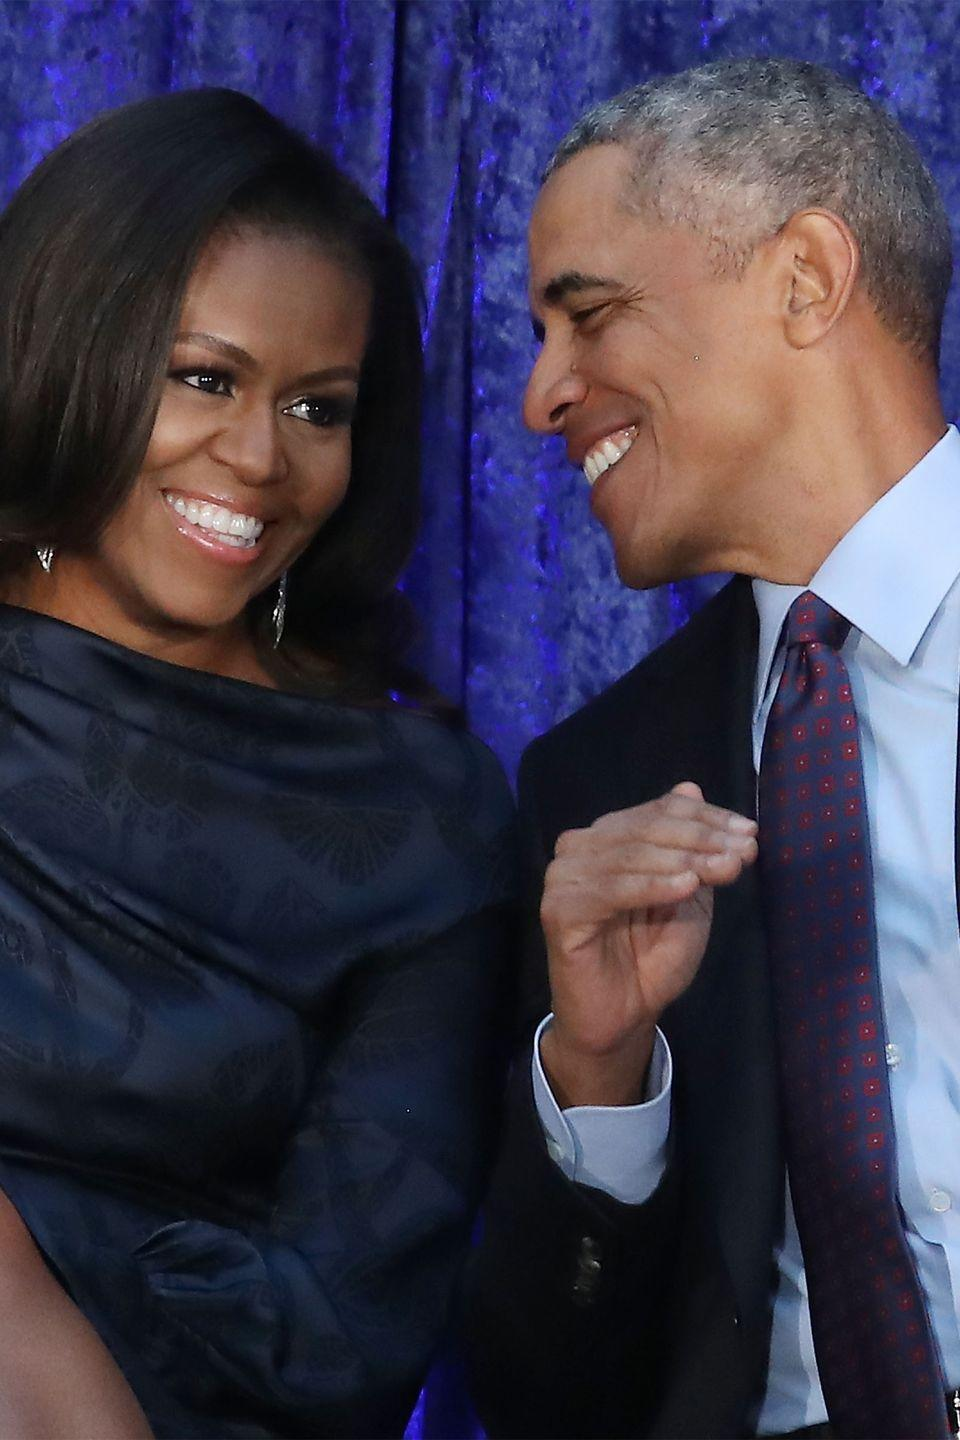 "<p>The Obamas made history in 2008 as the first black President and First Lady of the United States, and have continued to inspire us over the years. From sweet <a href=""https://www.harpersbazaar.com/celebrity/latest/news/a20011/celebrities-wish-michelle-obama-happy-birthday/"" rel=""nofollow noopener"" target=""_blank"" data-ylk=""slk:birthday tributes"" class=""link rapid-noclick-resp"">birthday tributes</a> to adorable <a href=""https://www.harpersbazaar.com/culture/features/g6295/barack-and-michelle-obama-anniversary/"" rel=""nofollow noopener"" target=""_blank"" data-ylk=""slk:candid moments"" class=""link rapid-noclick-resp"">candid moments</a>, the former POTUS and FLOTUS are a power couple that never fails to keep it real.</p><p><a href=""https://www.harpersbazaar.com/culture/features/a25005940/oprah-michelle-obama-becoming-interview/"" rel=""nofollow noopener"" target=""_blank"" data-ylk=""slk:Talking to Oprah"" class=""link rapid-noclick-resp"">Talking to Oprah</a> about love in her new book, <em><a href=""https://www.amazon.com/Becoming-Michelle-Obama/dp/1524763136?tag=syn-yahoo-20&ascsubtag=%5Bartid%7C10063.g.34588738%5Bsrc%7Cyahoo-us"" rel=""nofollow noopener"" target=""_blank"" data-ylk=""slk:Becoming"" class=""link rapid-noclick-resp"">Becoming</a></em>, Michelle stated: ""I always thought love was up close. Love is the dinner table, love is consistency, it is presence. So I had to share my vulnerability and also learn to love differently. It was an important part of my journey of becoming. Understanding how to become us.""</p>"